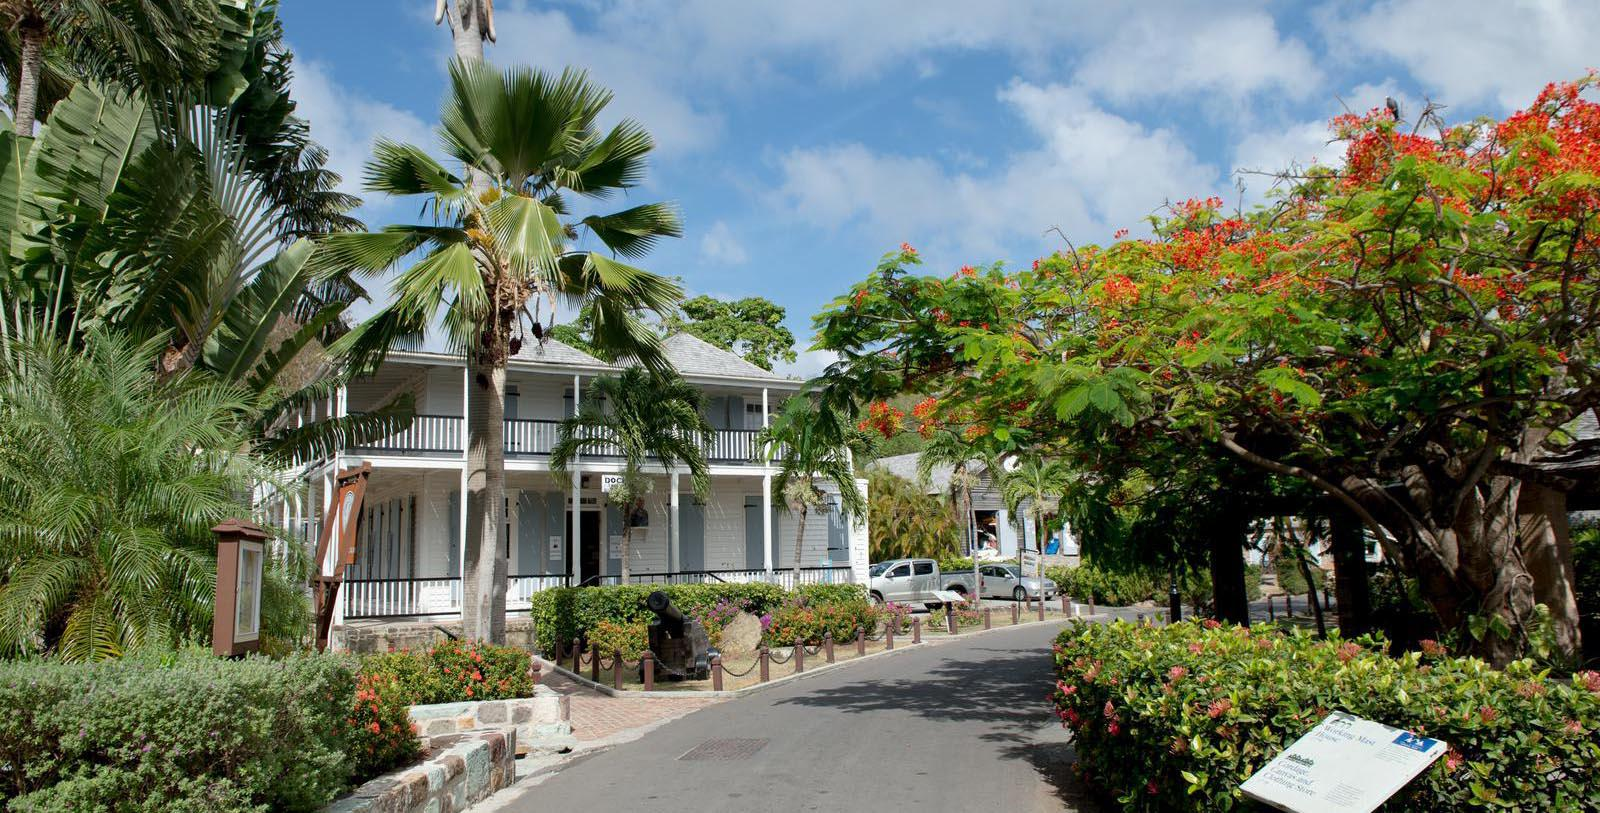 Image of hotel exterior Copper and Lumber Store Historic Inn, 1789, Member of Historic Hotels Worldwide, in English Harbour, Antigua and Barbuda, Overview